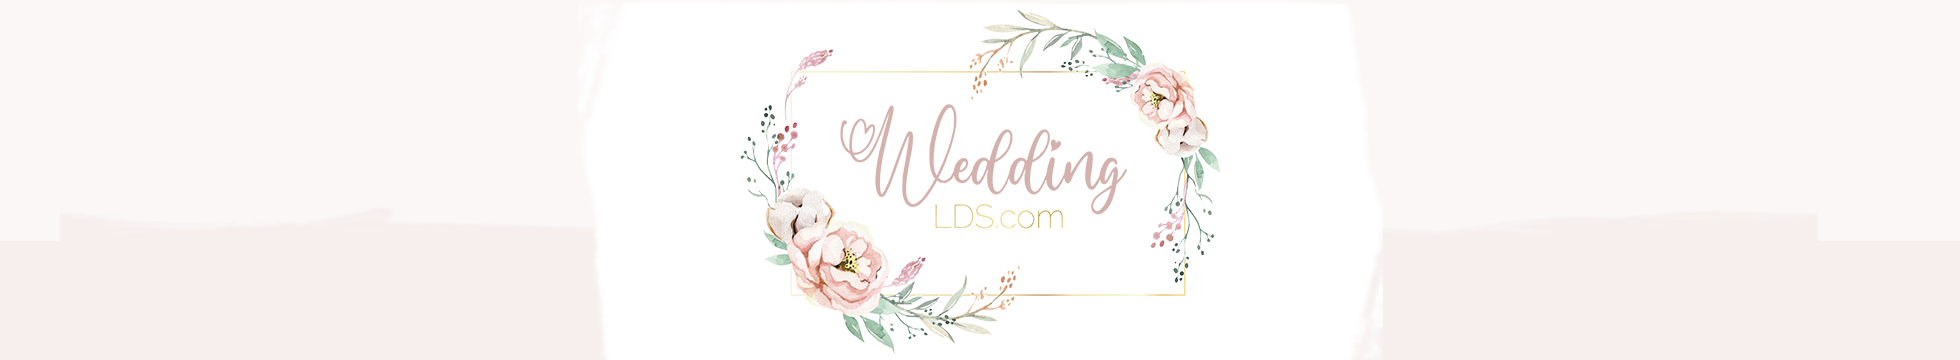 LDS Wedding Receptions